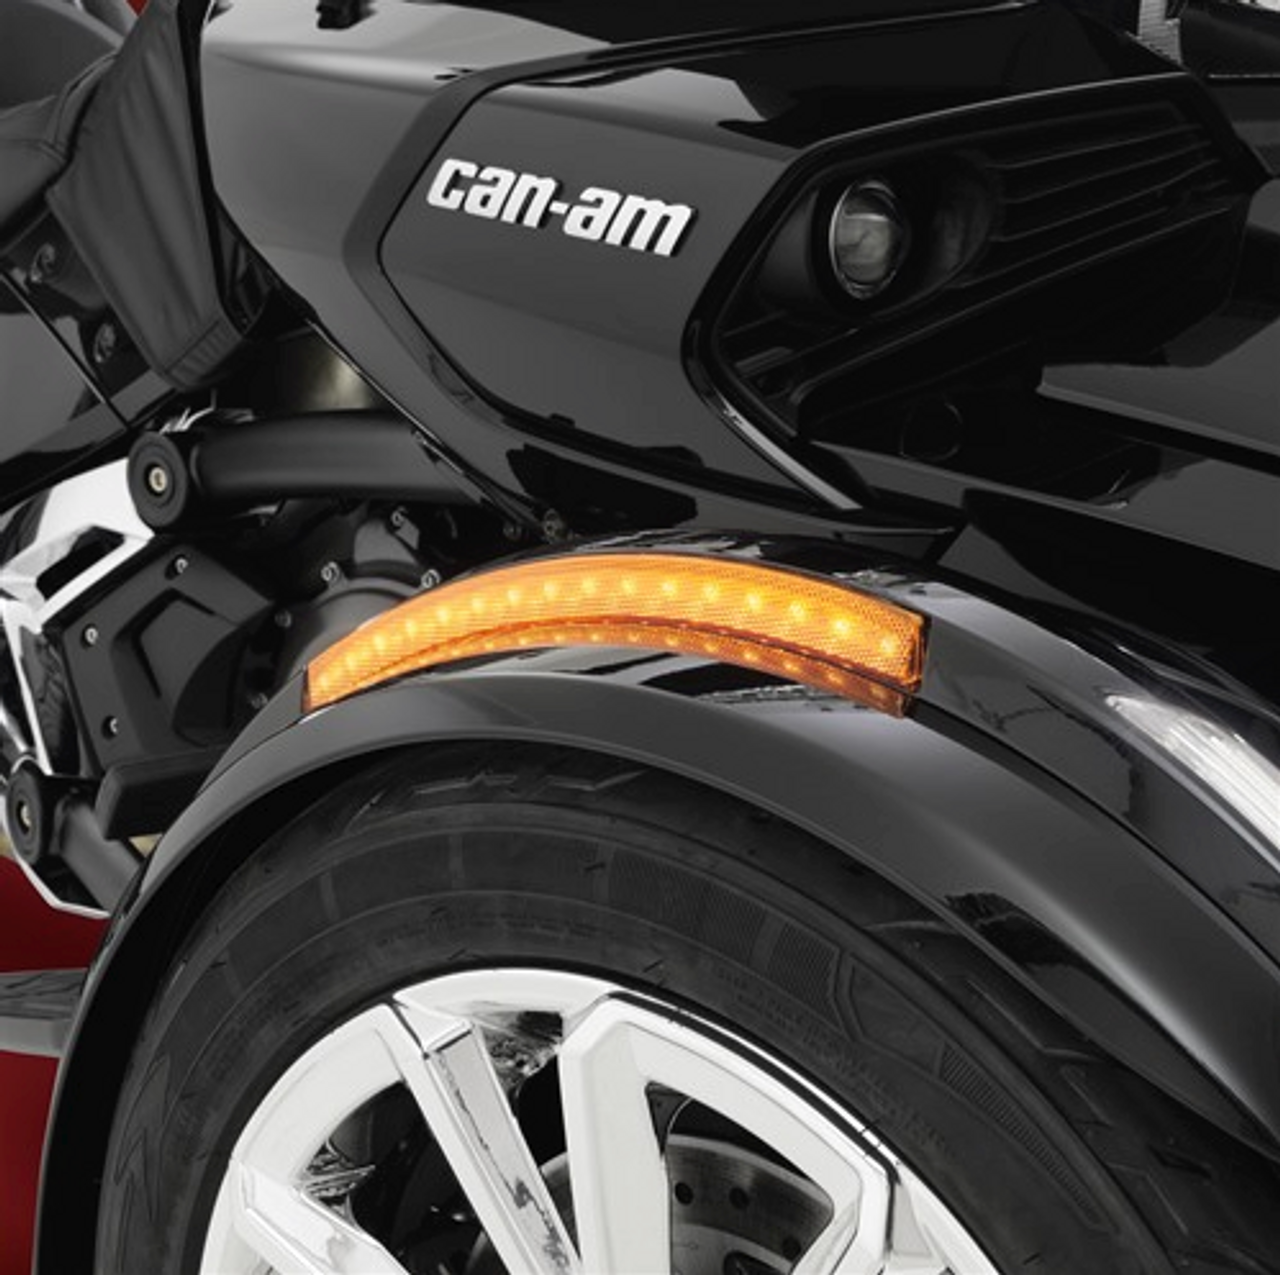 Show Chrome® Front Fender LED Reflectors Next Gen. (RT Complete Kit) (SC-RT-173A-174A-99) Lamonster Approved (Shown on F3 but ALL Spyder Fenders are the same on RT-S, RT-LTD, F3-S, F3-T, F3-LTD ETC)